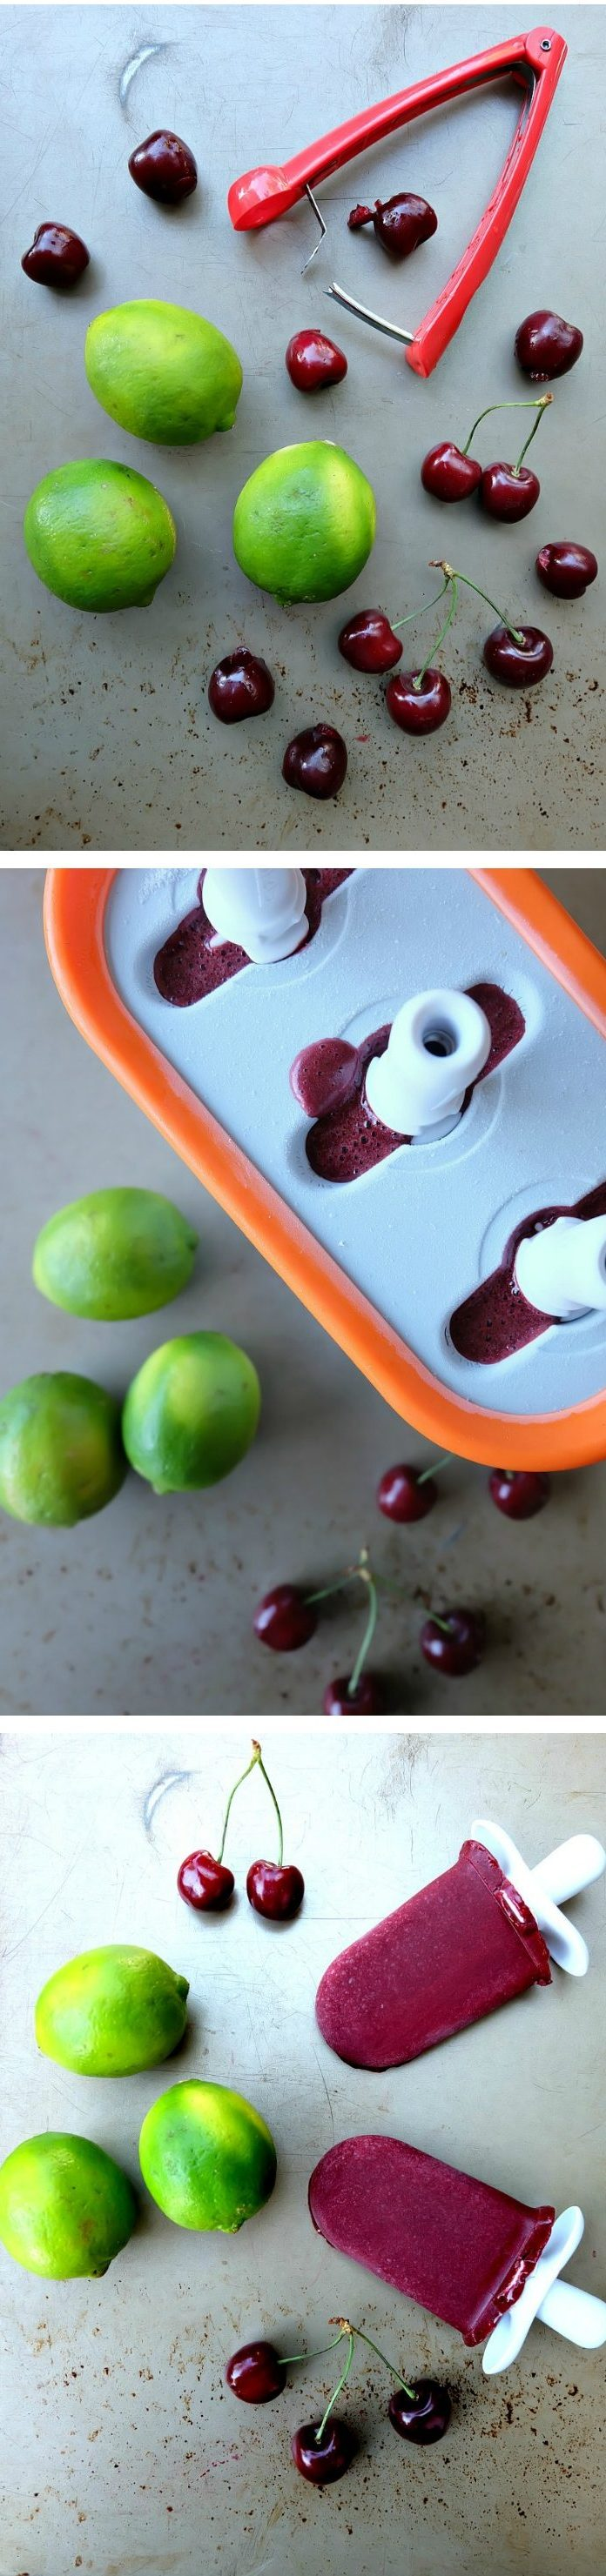 Ice pops are one of my favorite things about summer and this Cherry Coconut Lime Popsicles Recipe does not disappoint! With no added sugar, this recipe is a healthy treat, but it also has an extra special ingredient that ups the health quota! Easy to make, refreshing and a recipe kids and adults will love!